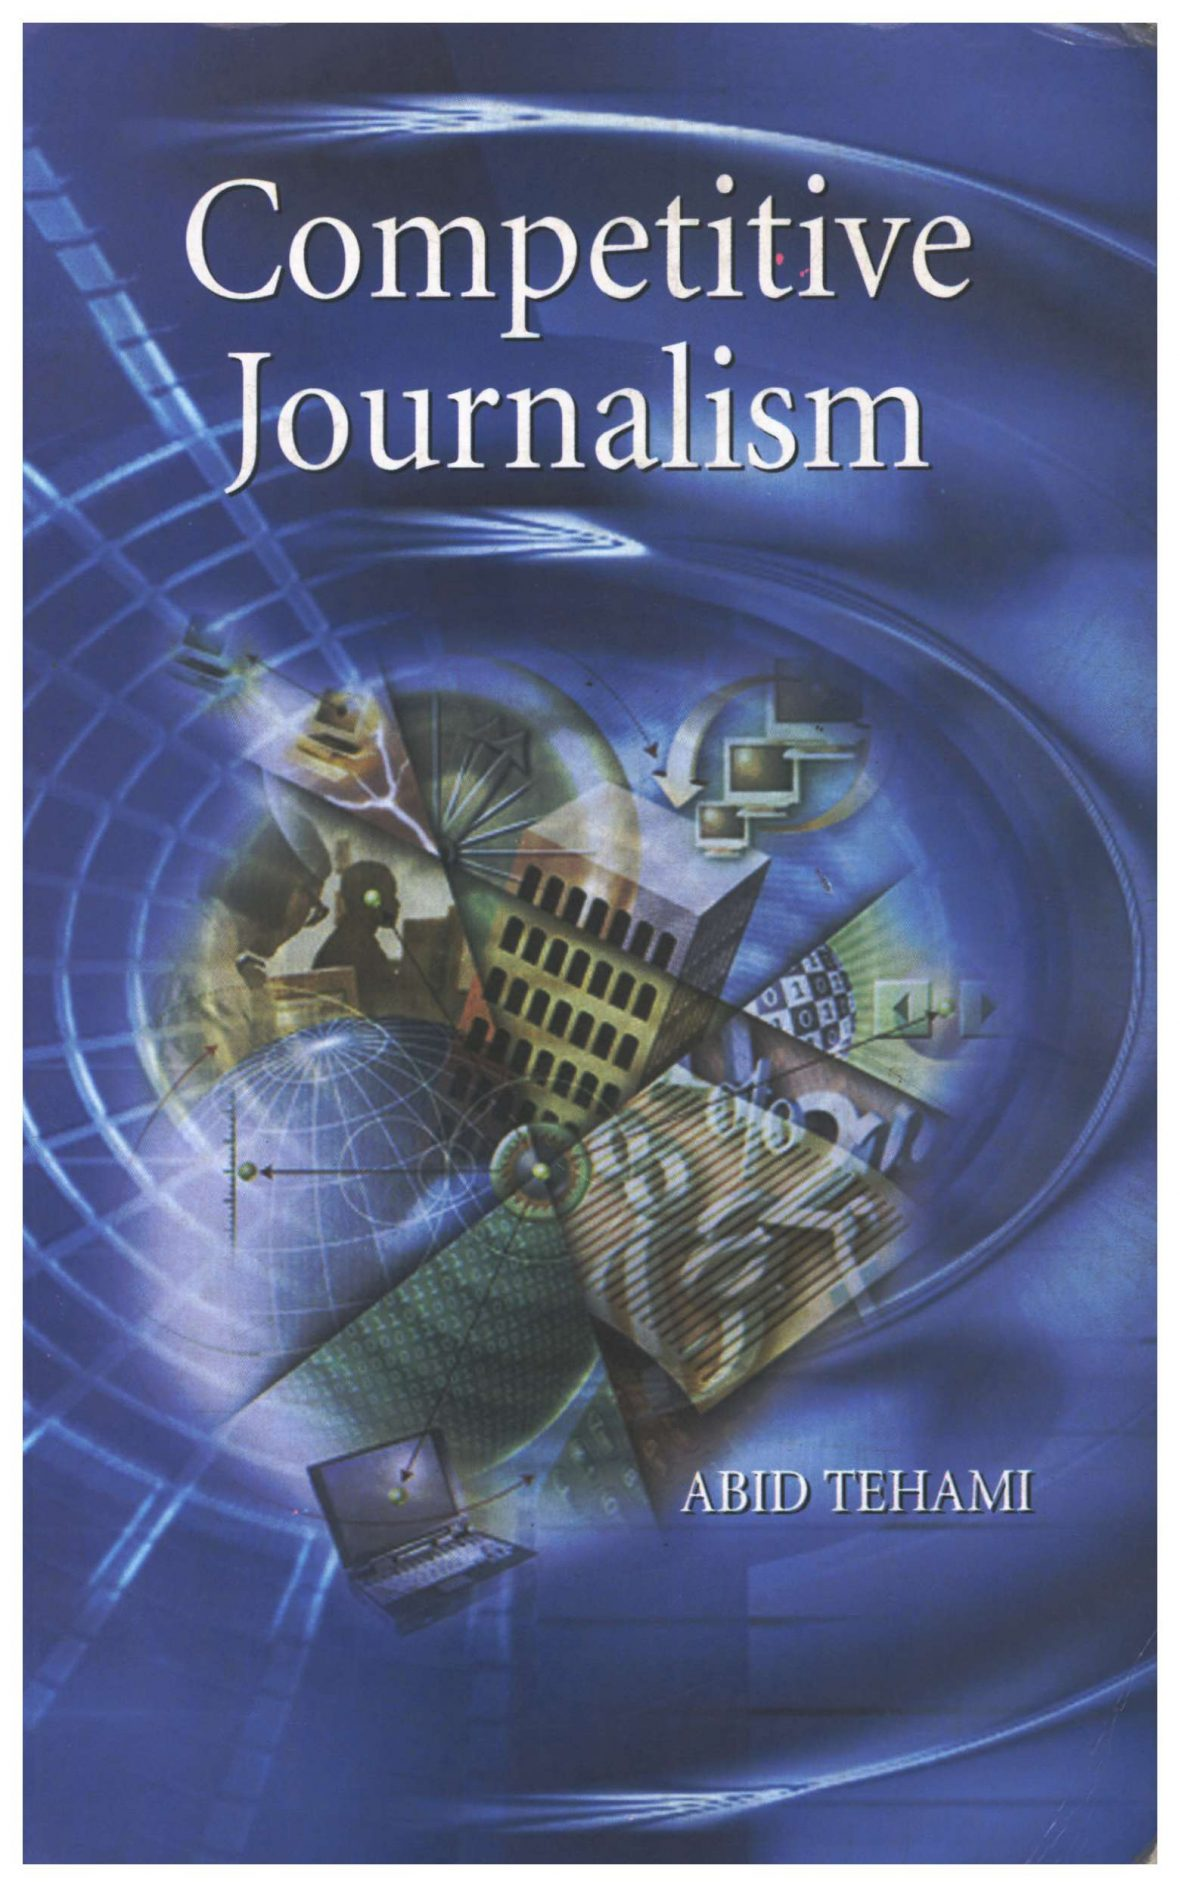 Competitive Journalism by Abid Tehami